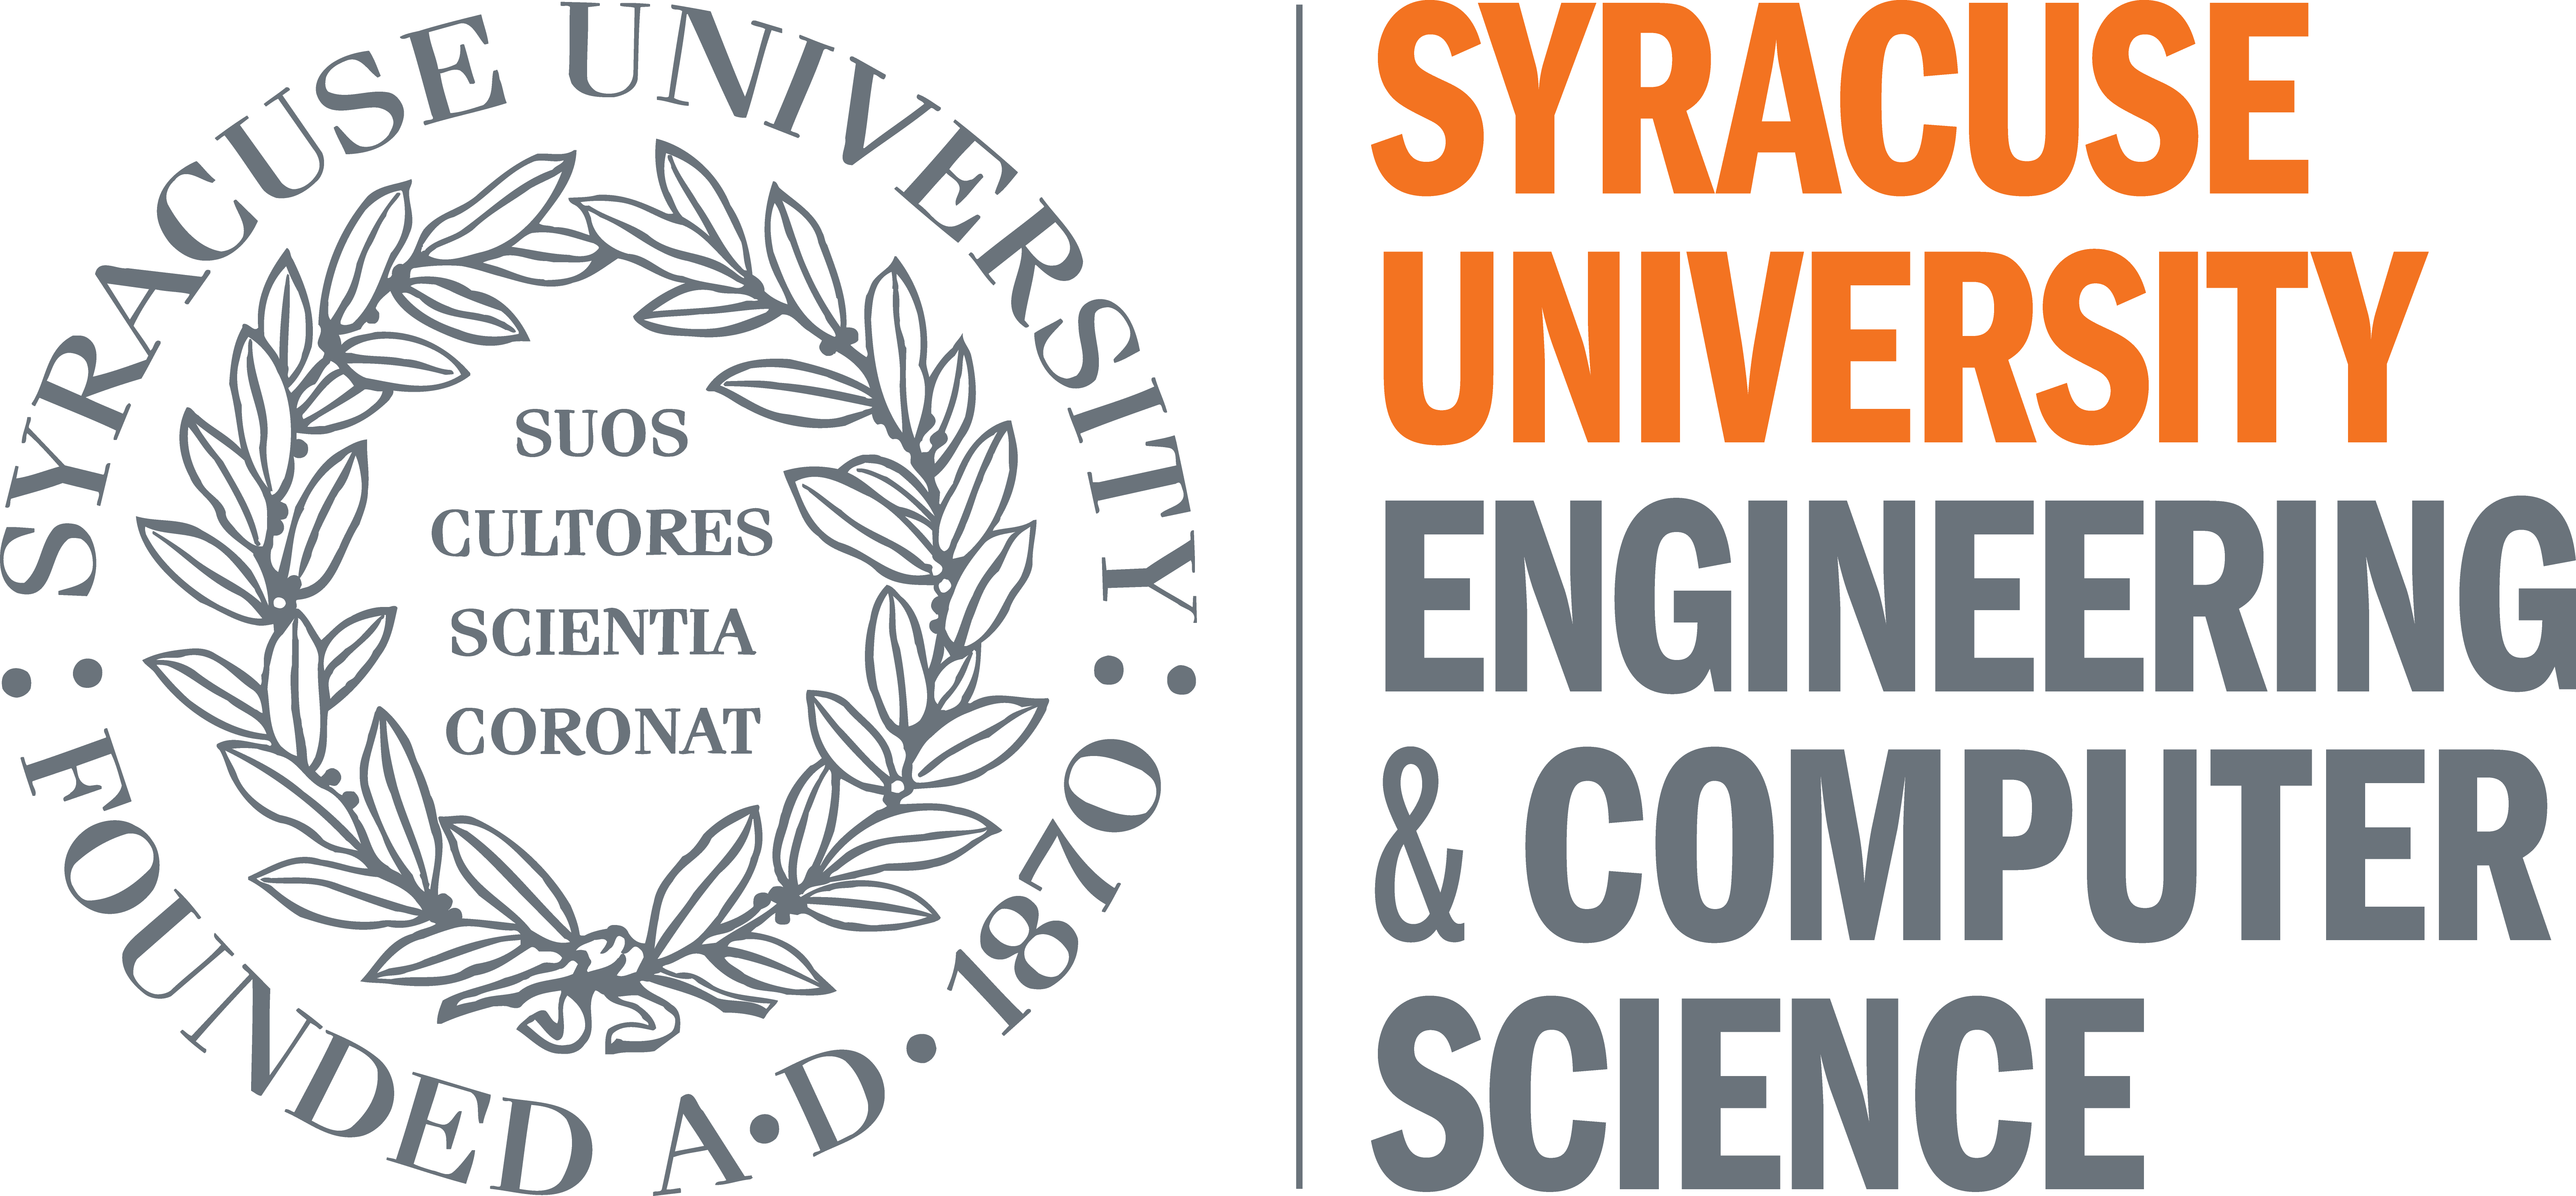 Syracuse University Engineer + Computer Science